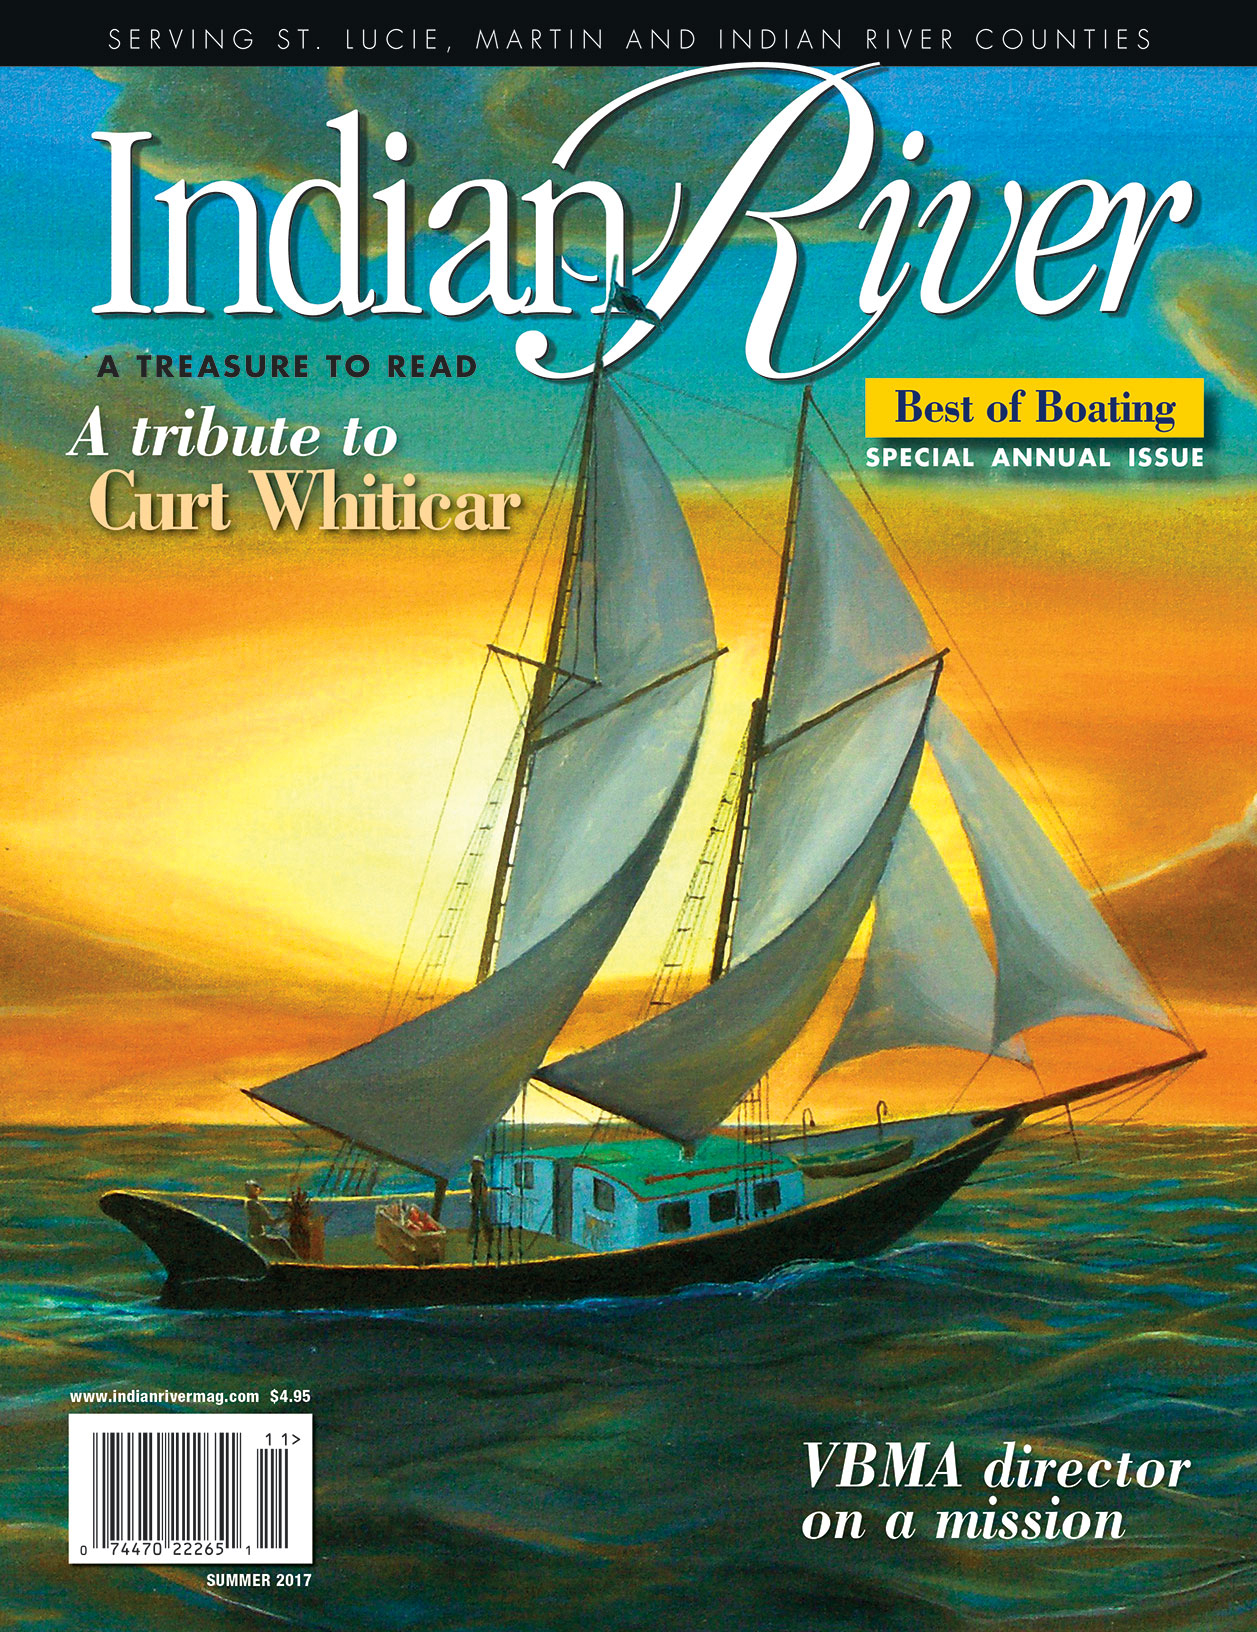 Spring 2017 Indian River Magazine